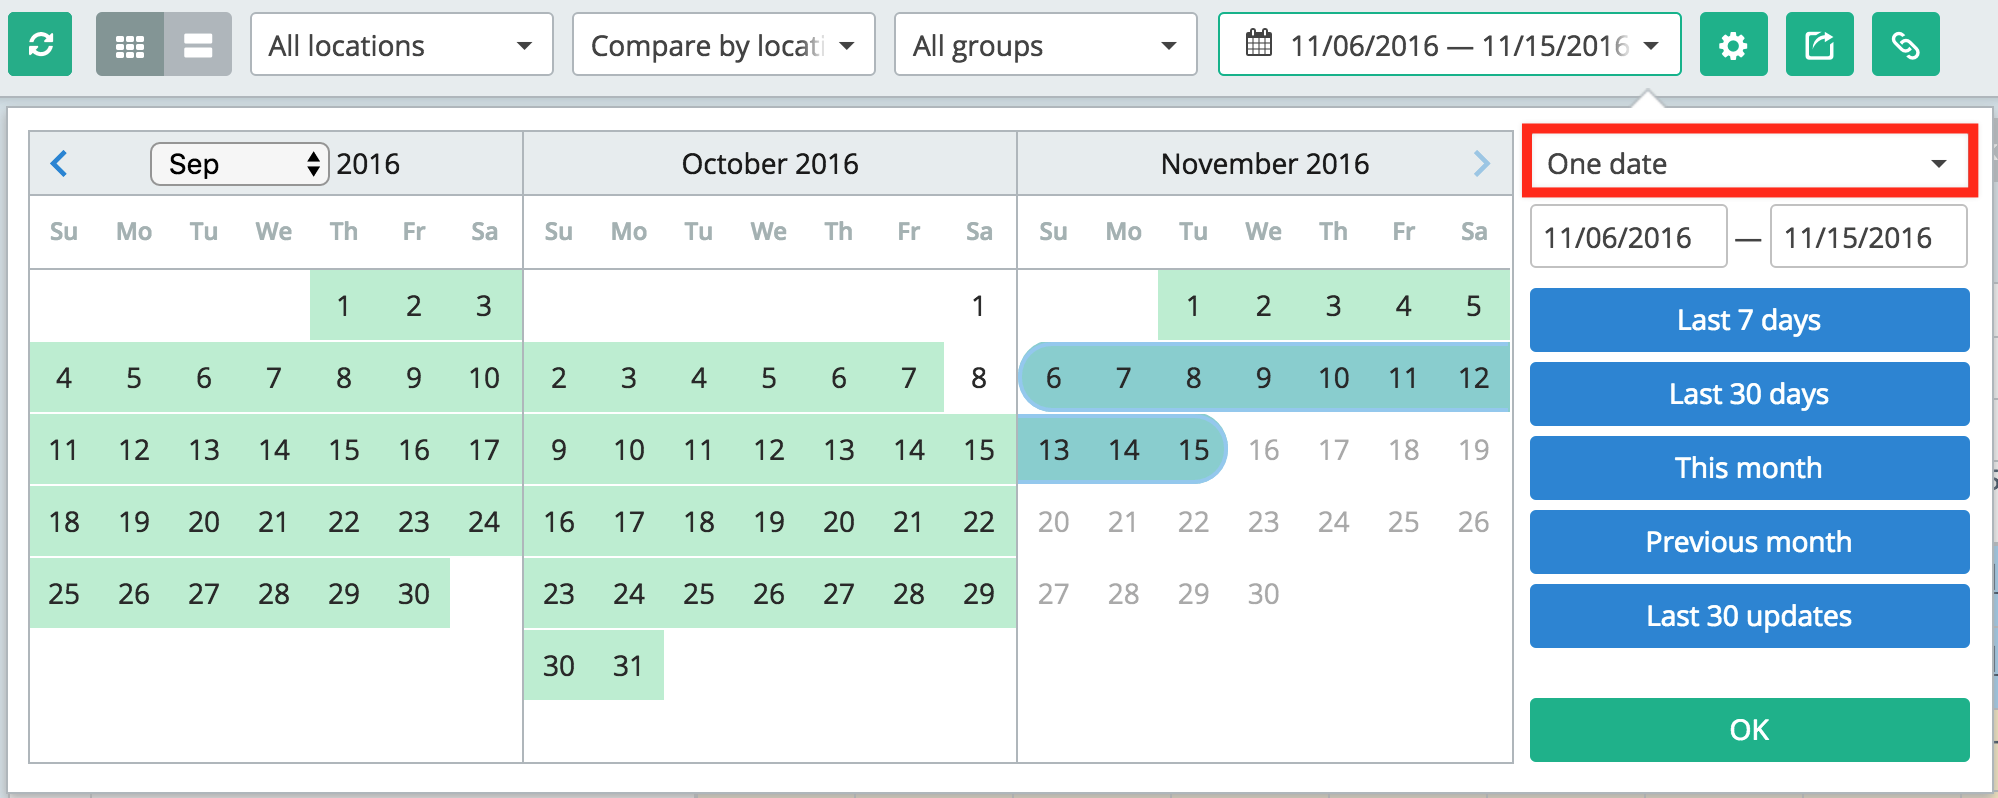 One-date mode picked in the Calendar